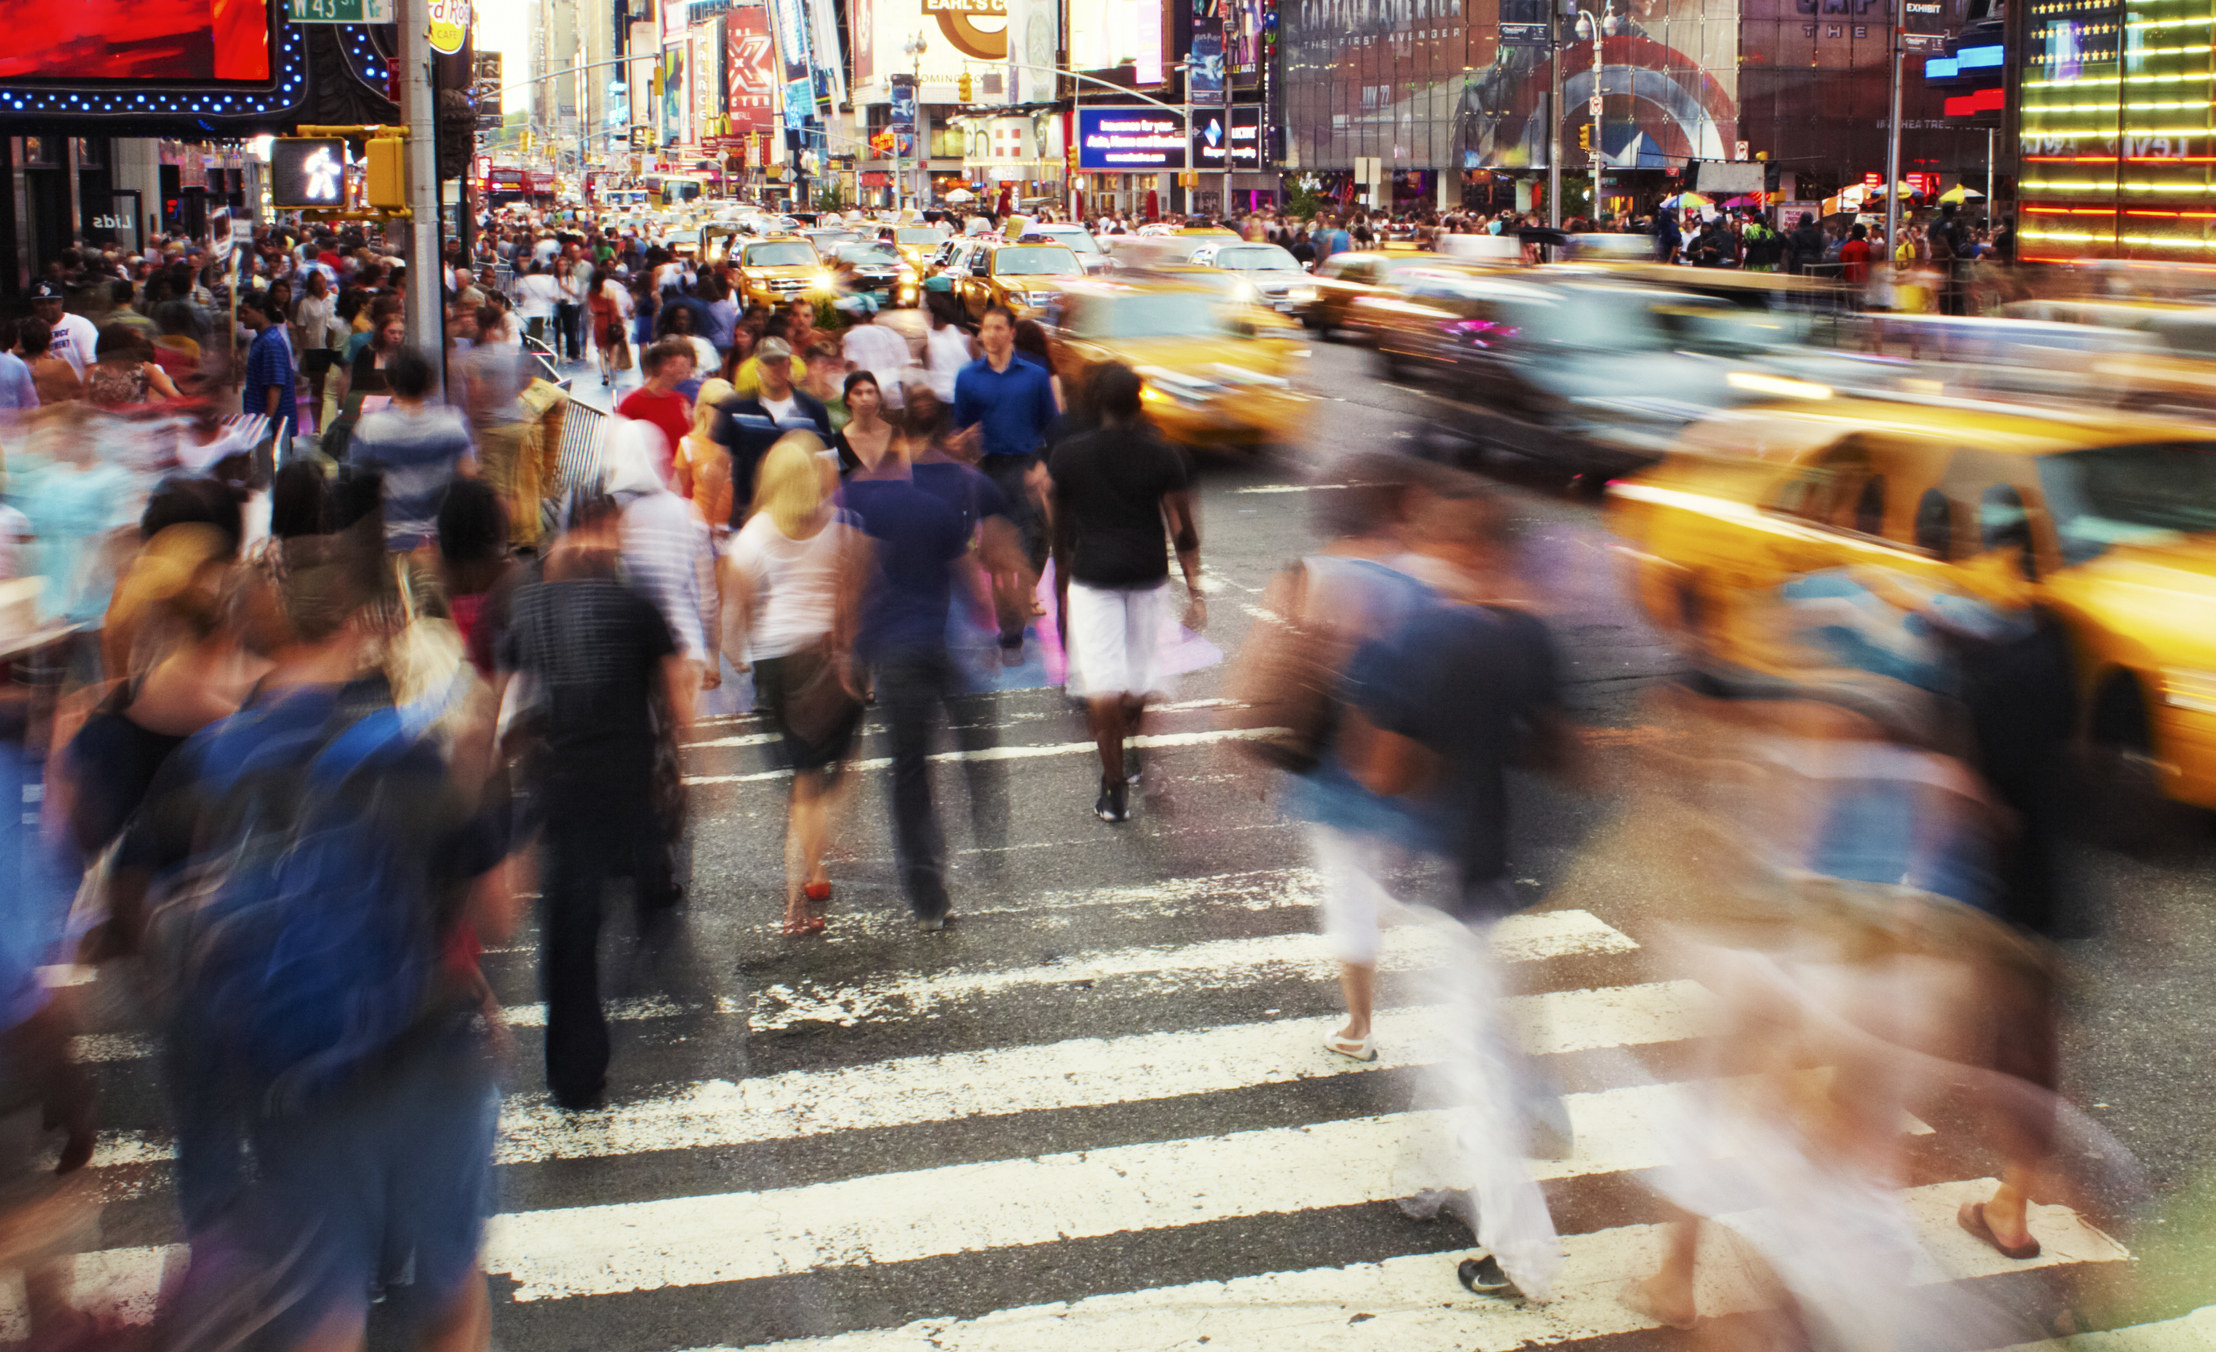 A crowded intersection in Times Square, NYC